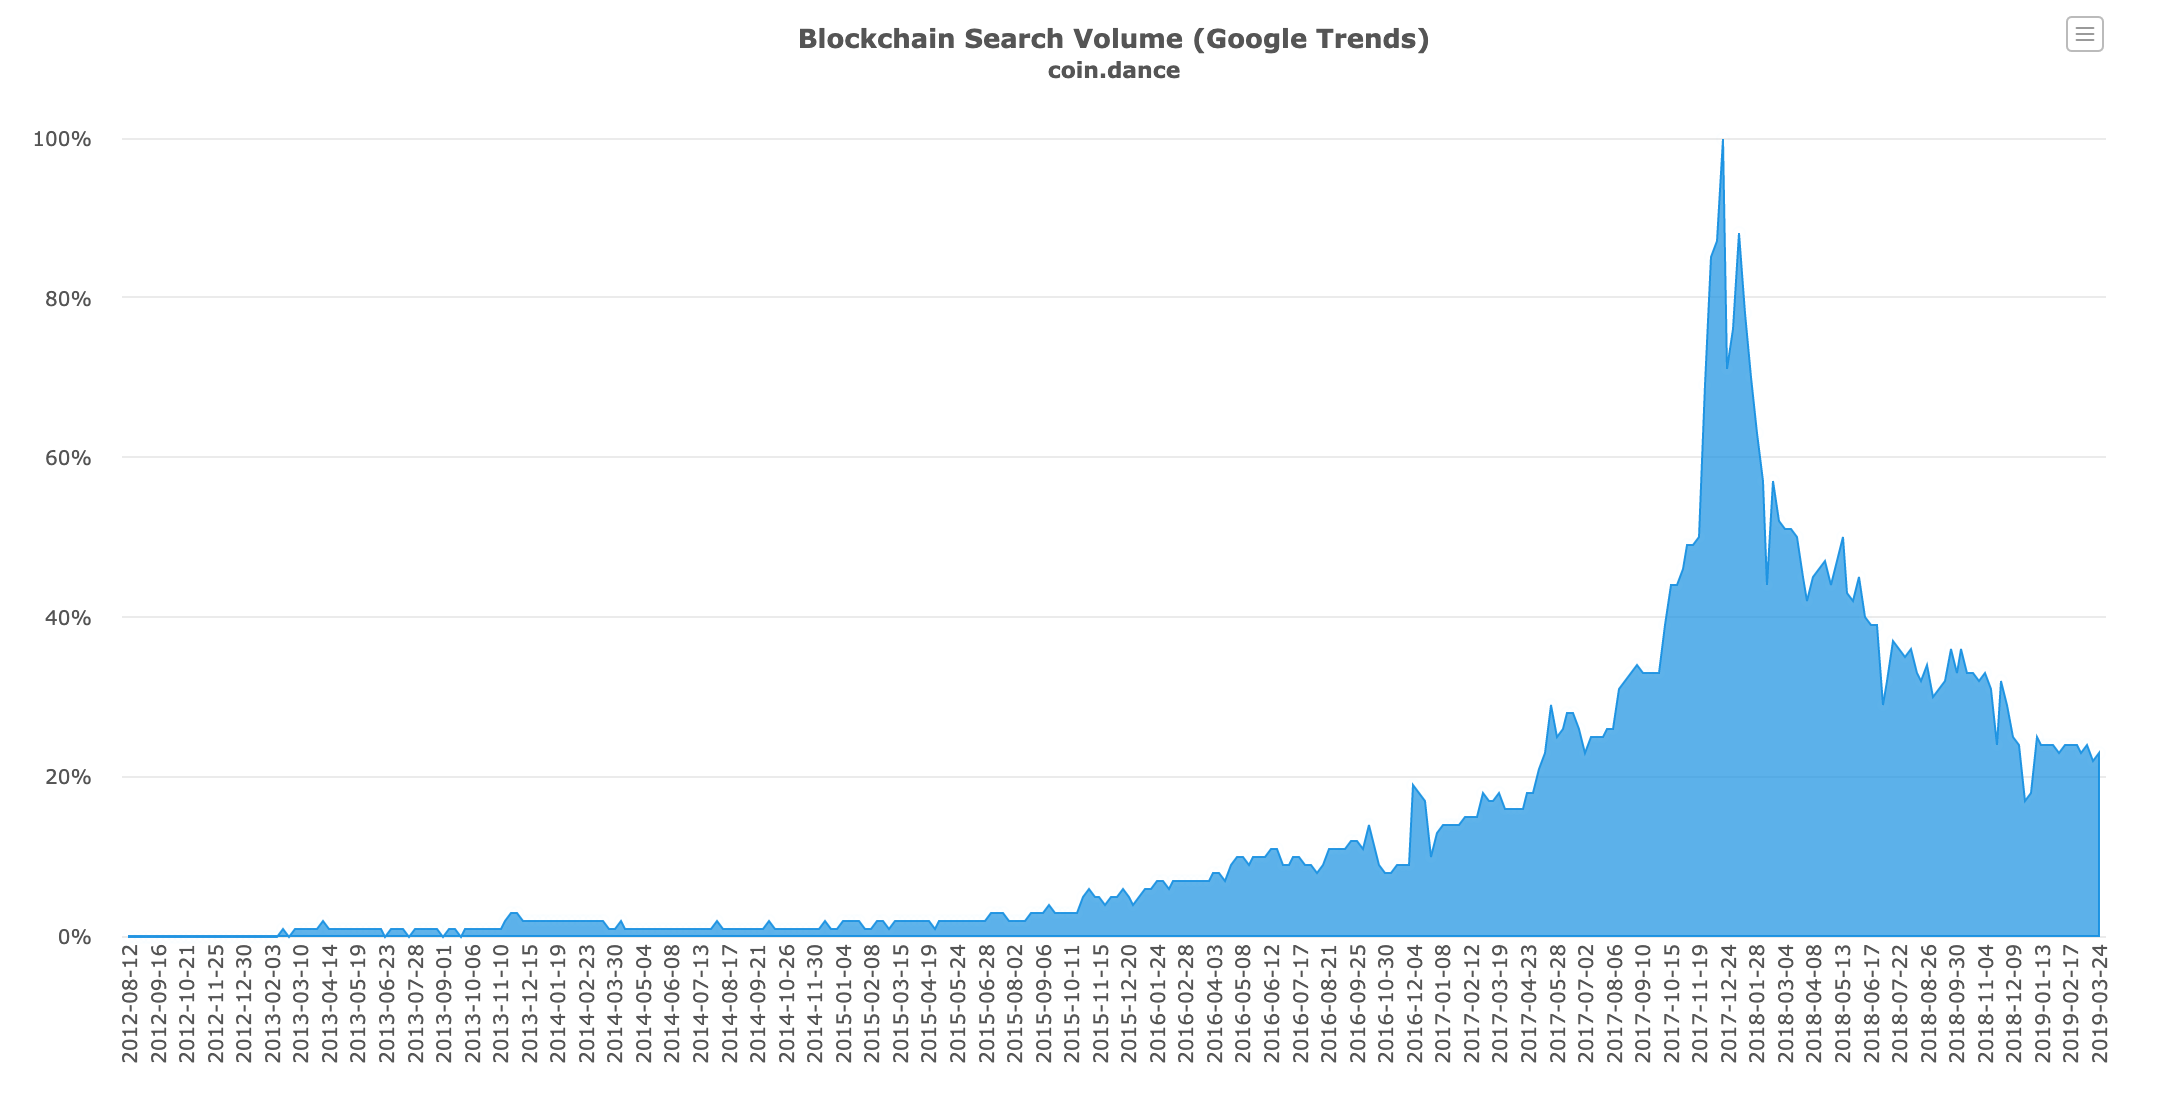 Blockchain Search Volume